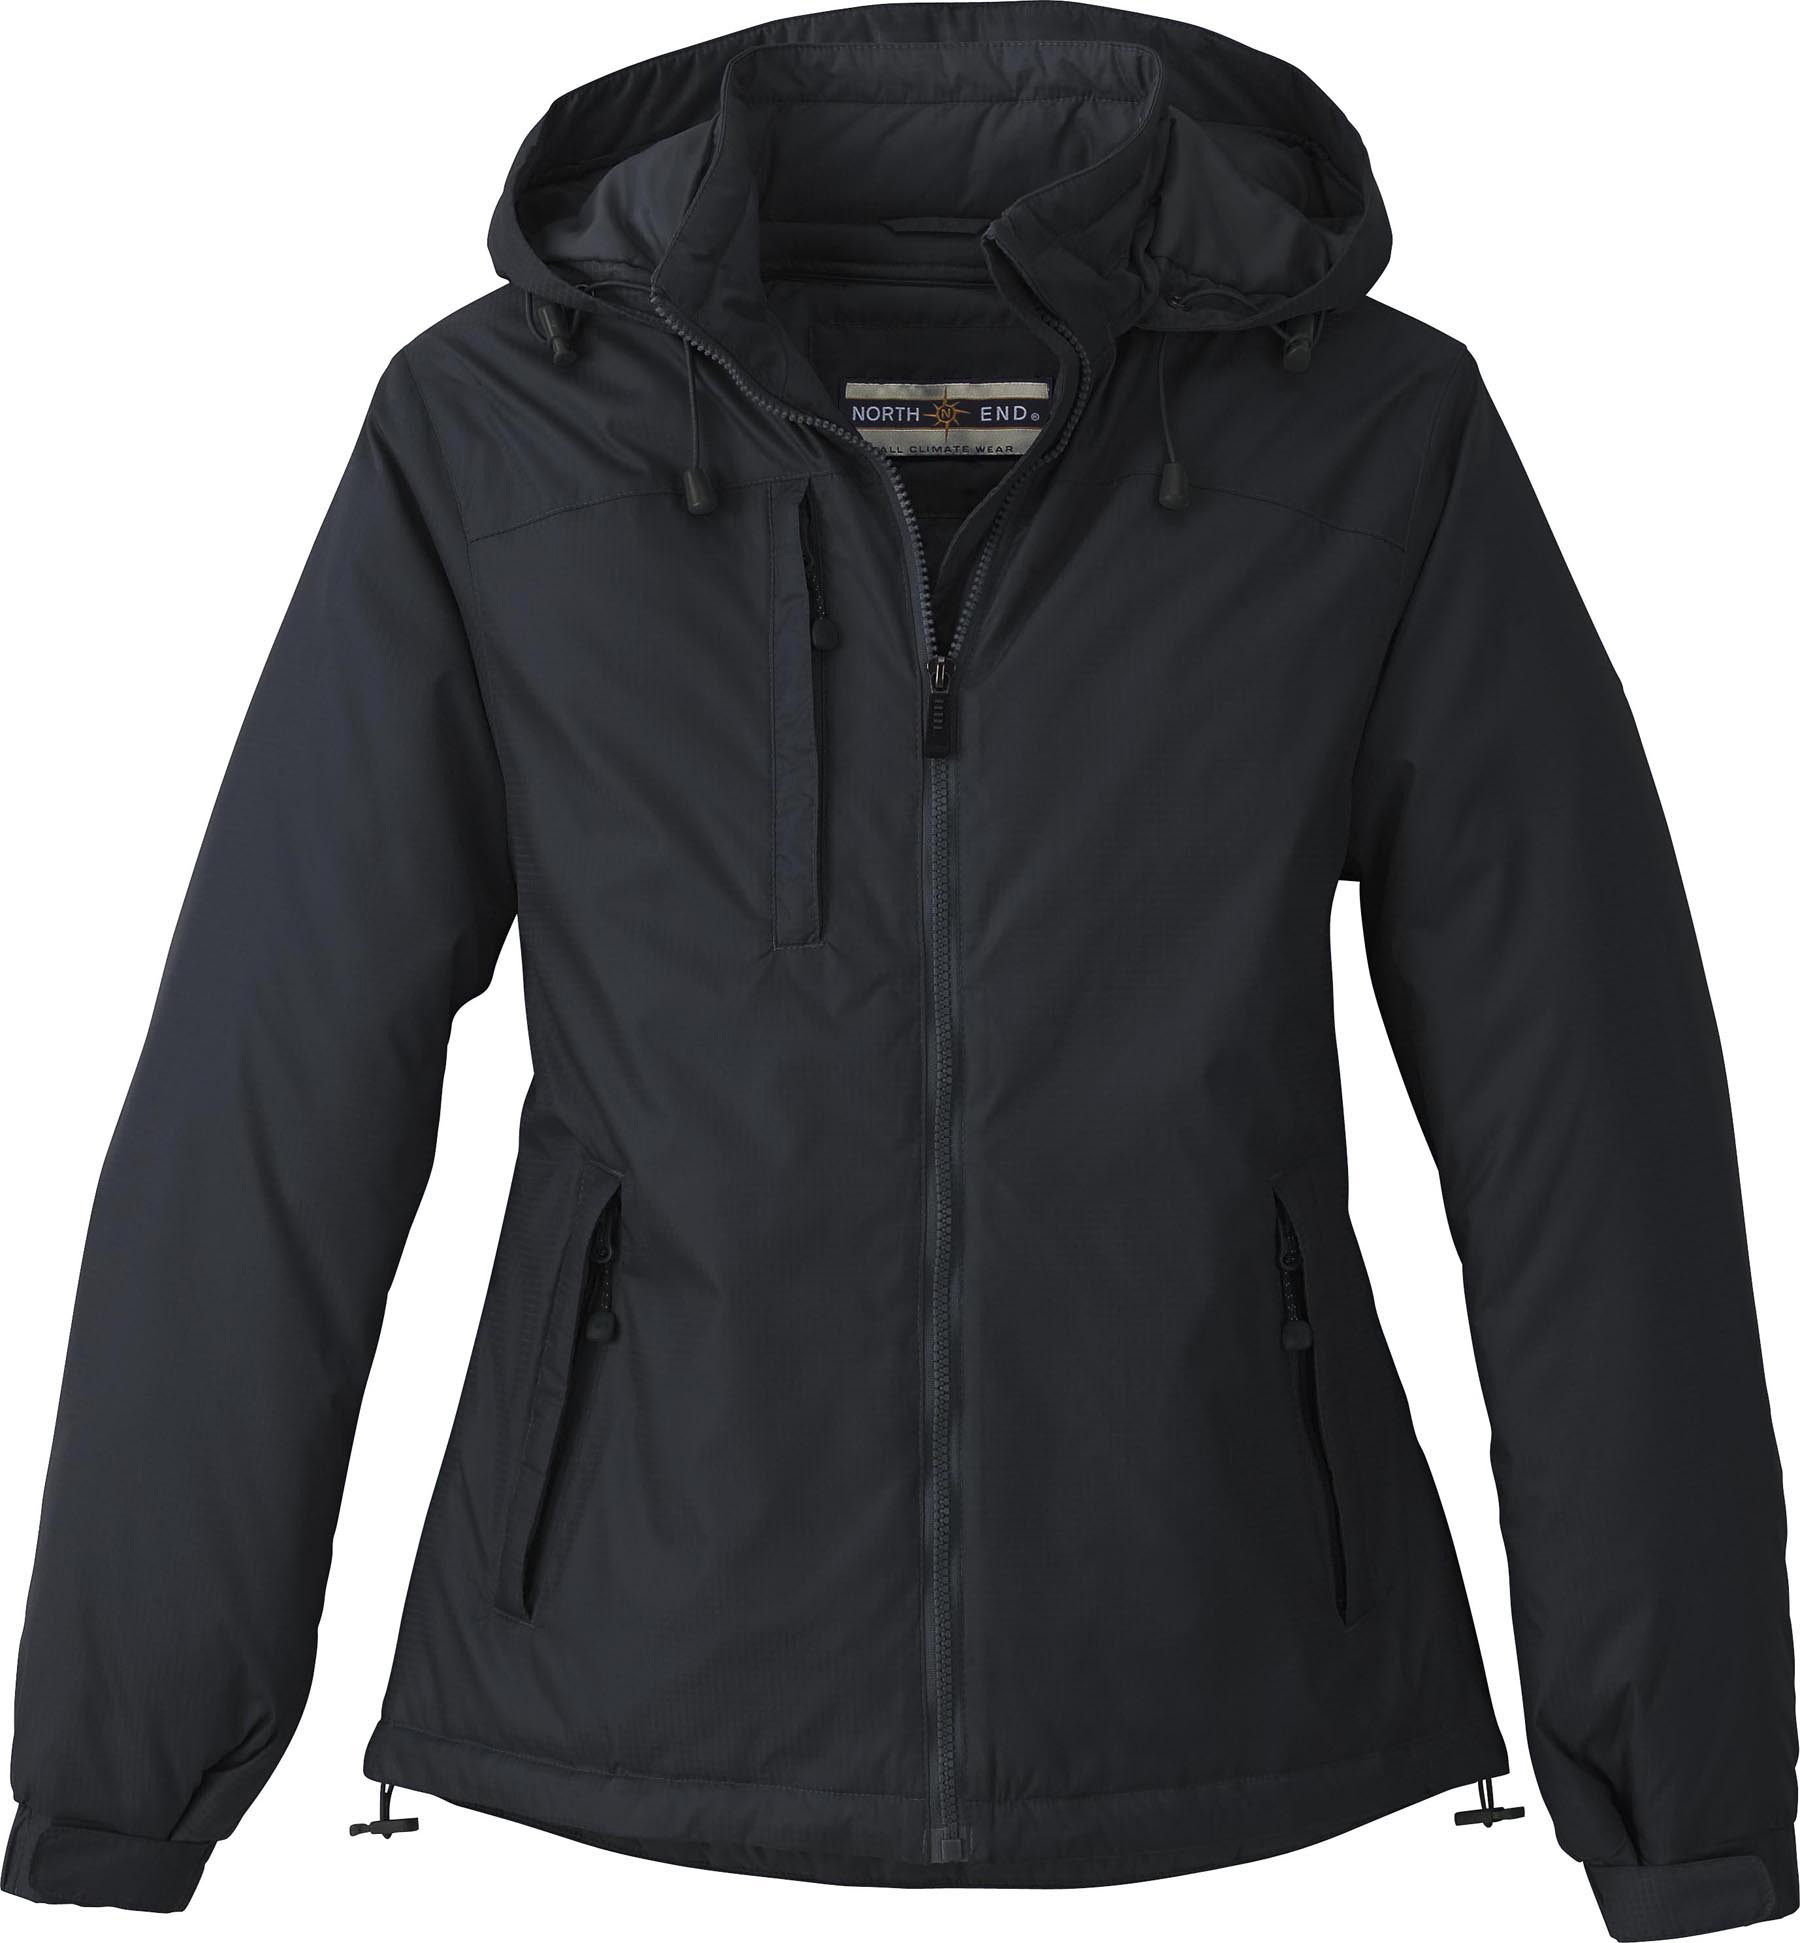 Ash City UTK 2 Warm.Logik 78059 - Ladies' Hi-Loft Insulated Jacket